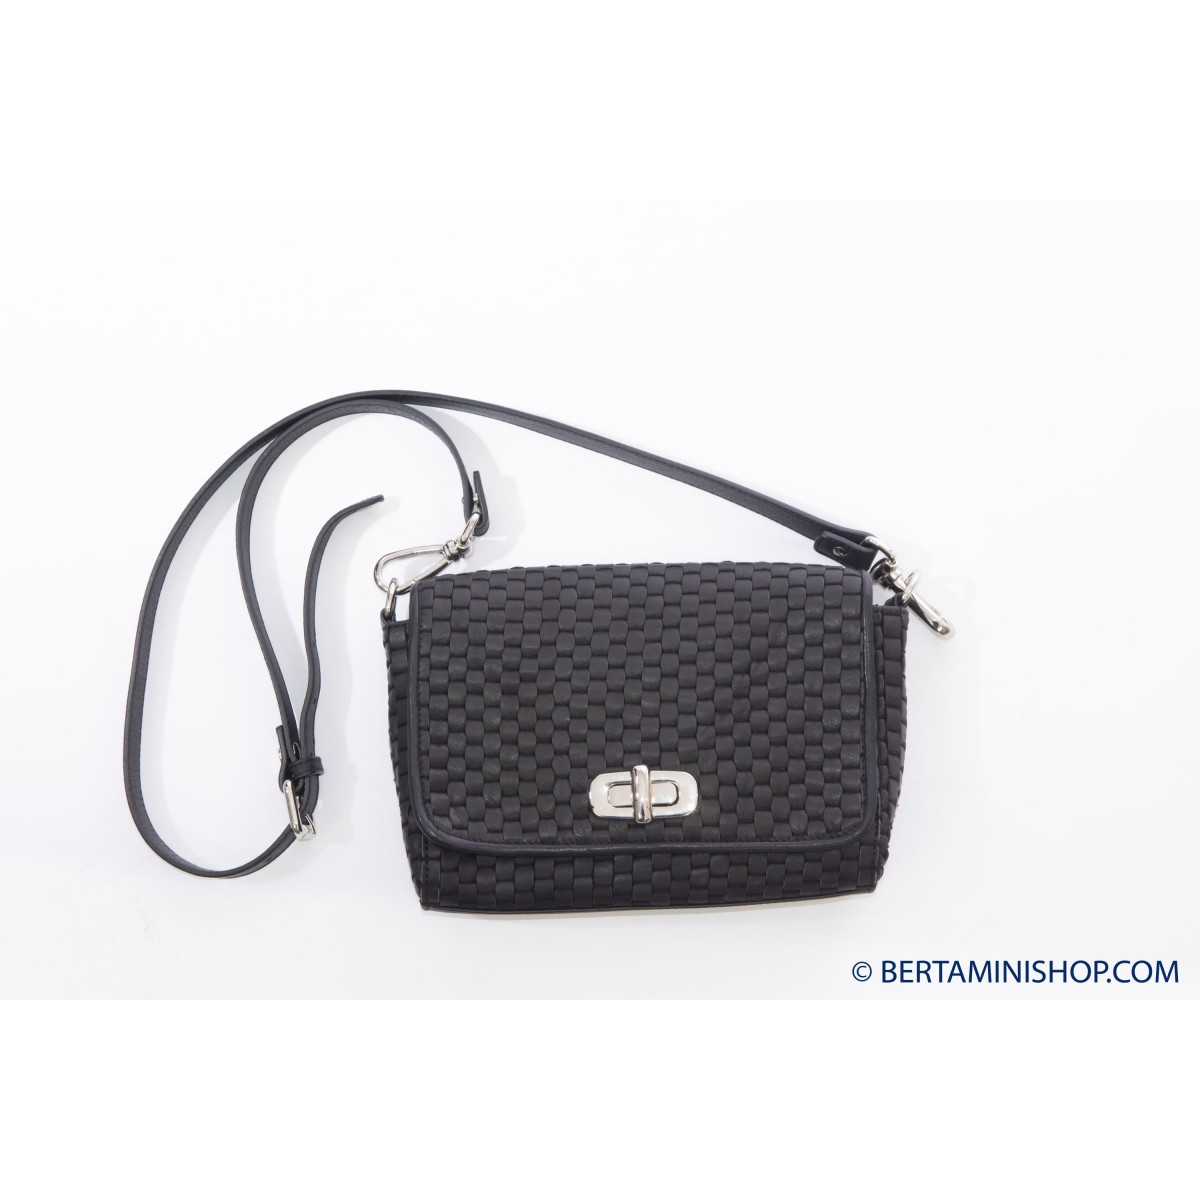 Tasche Bruno Parise Italia - Billie NERO